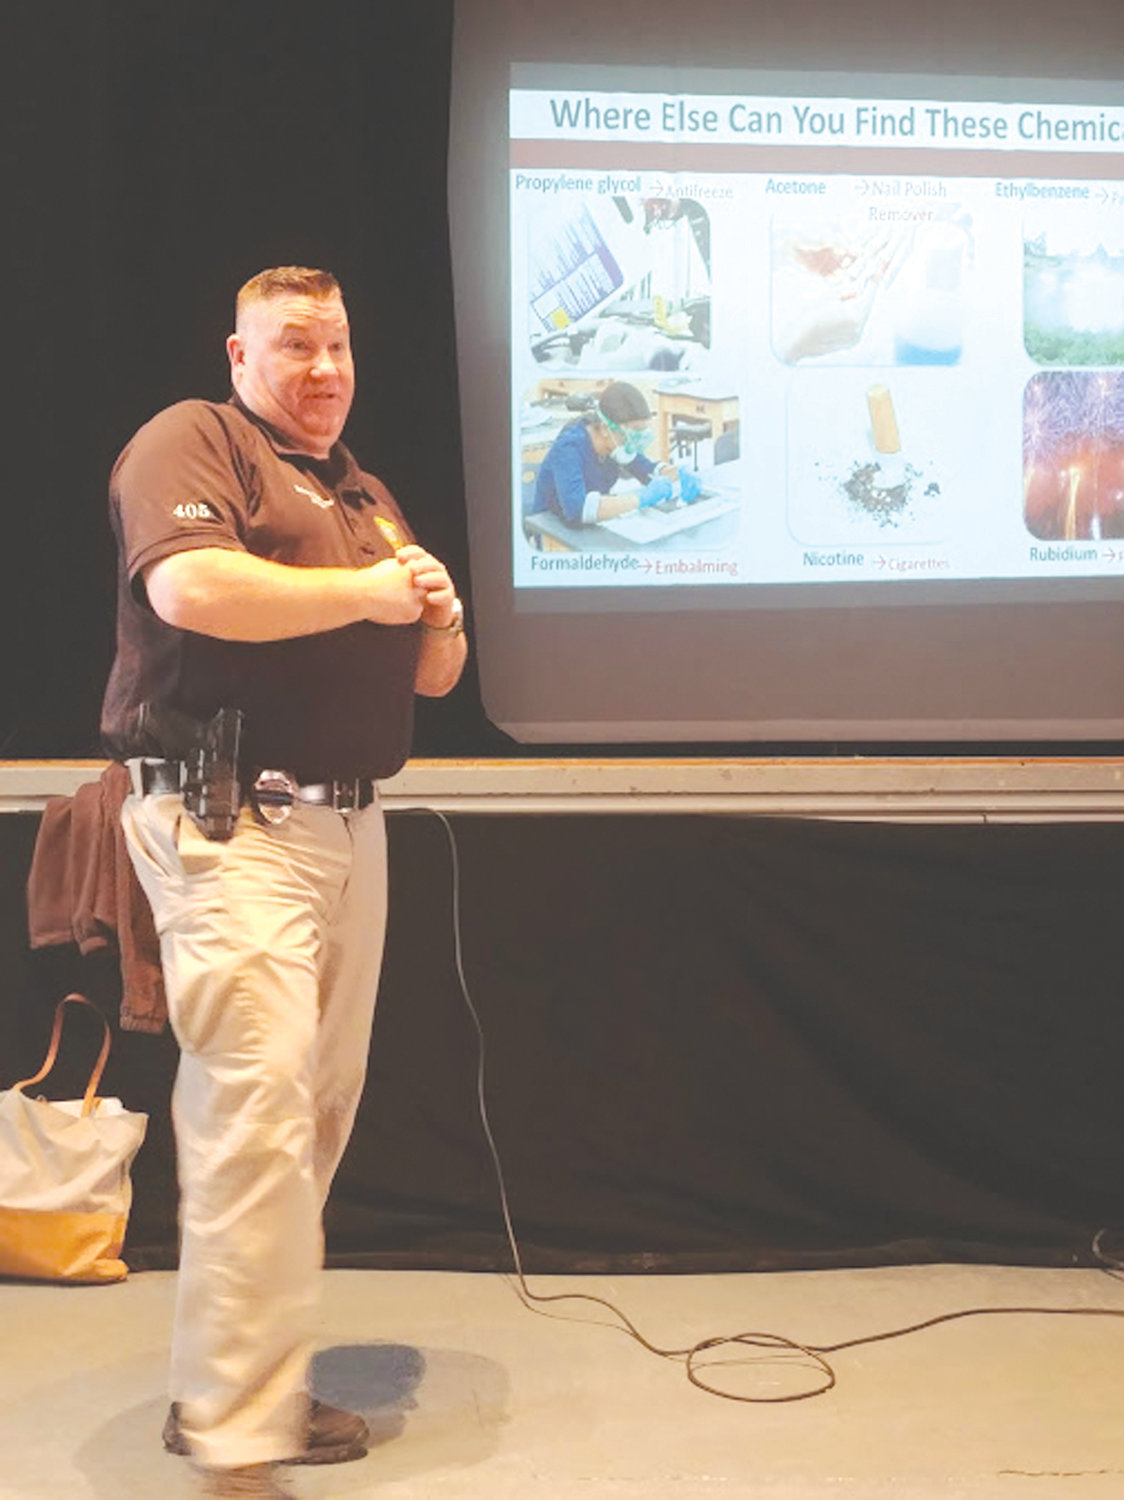 KNOWING THE DANGERS: School Resource Officer Kevin Denneny spoke to the students at Hugh B. Bain Middle School recently about the chemicals contained in e-cigarette pods.